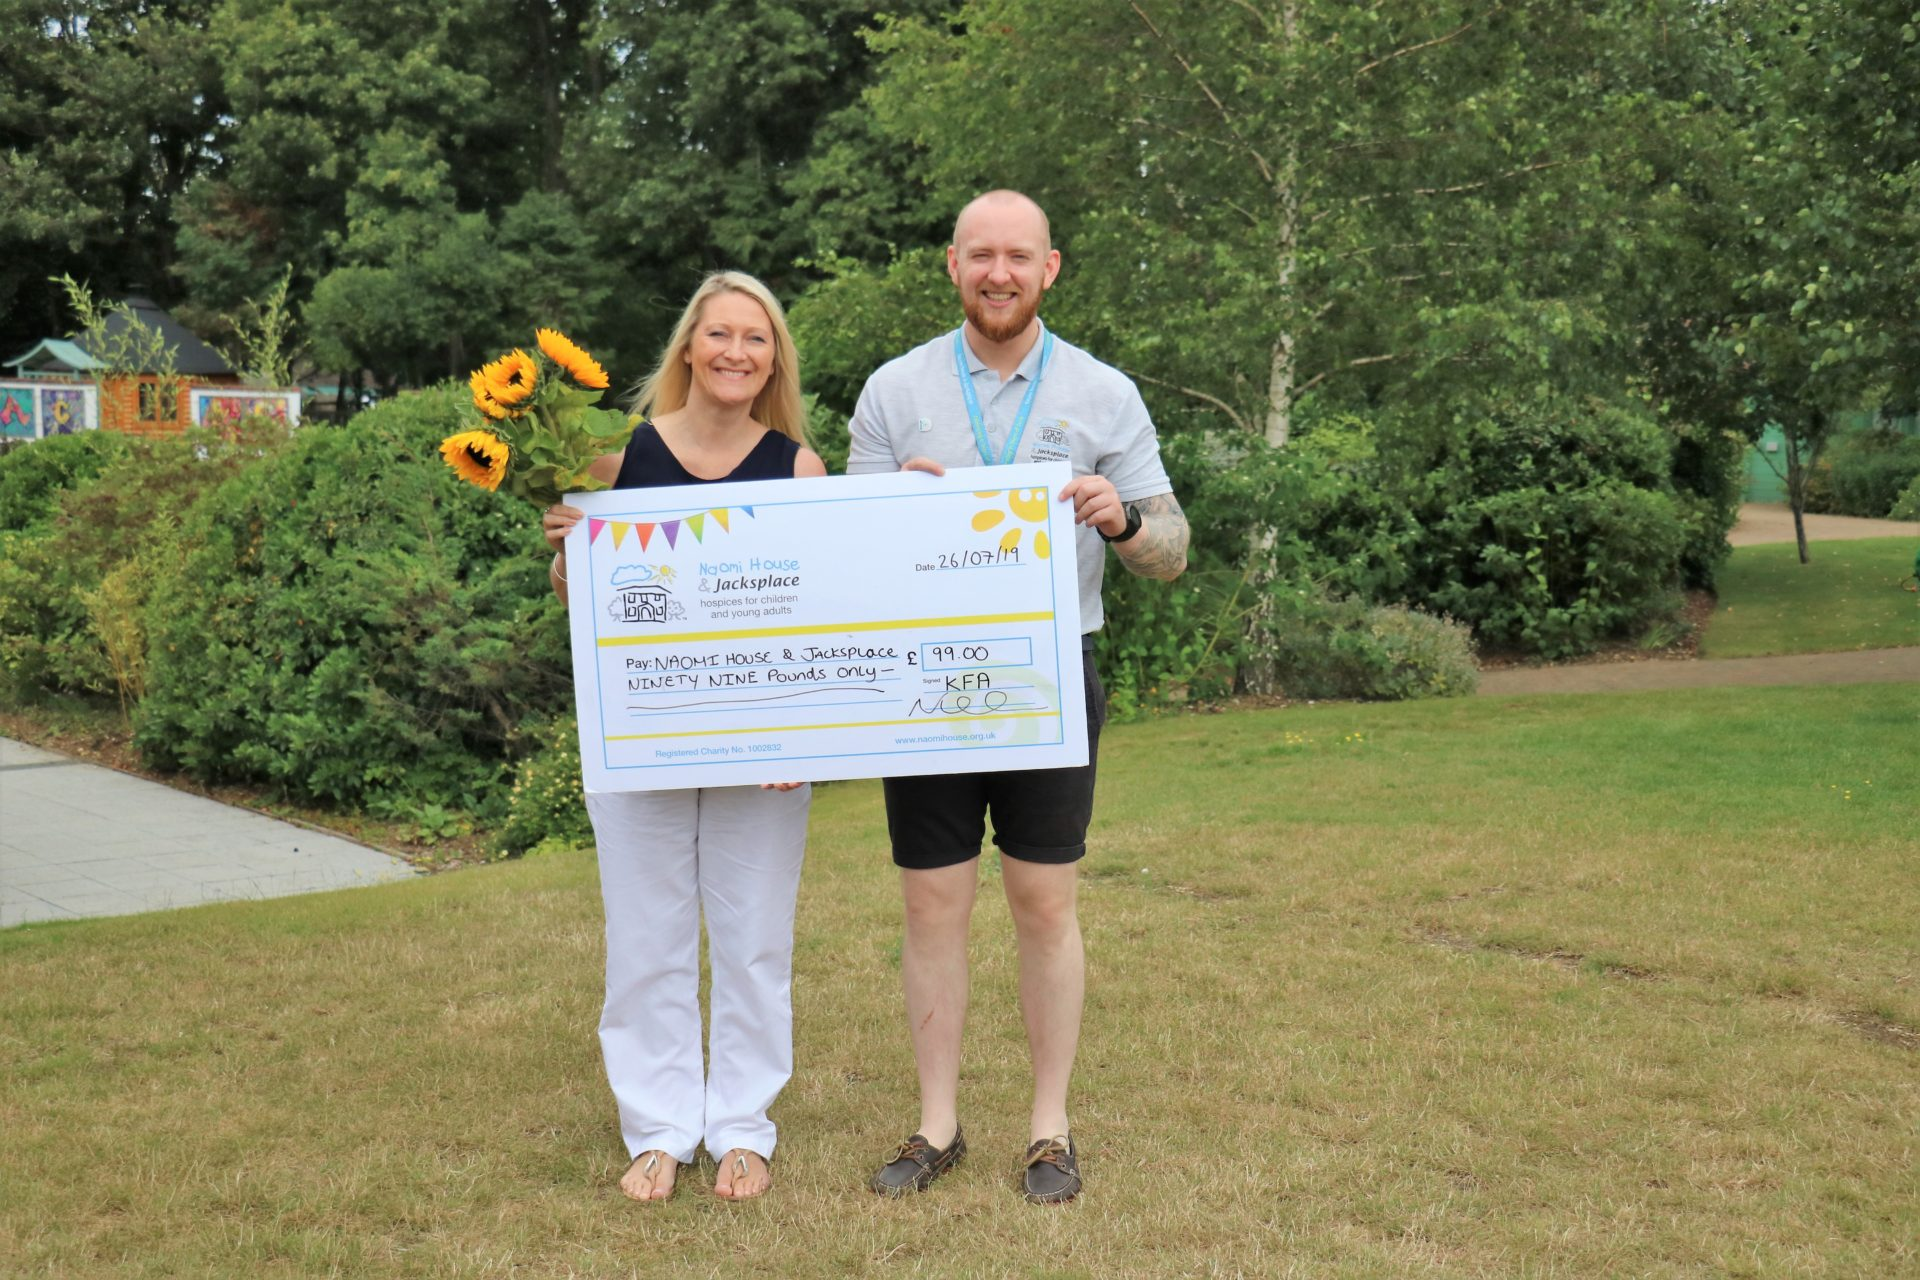 Naomi House Cheque presentation Gardening 2019 1920x1280 - Nicki visits Naomi House & Jacksplace to present cheque